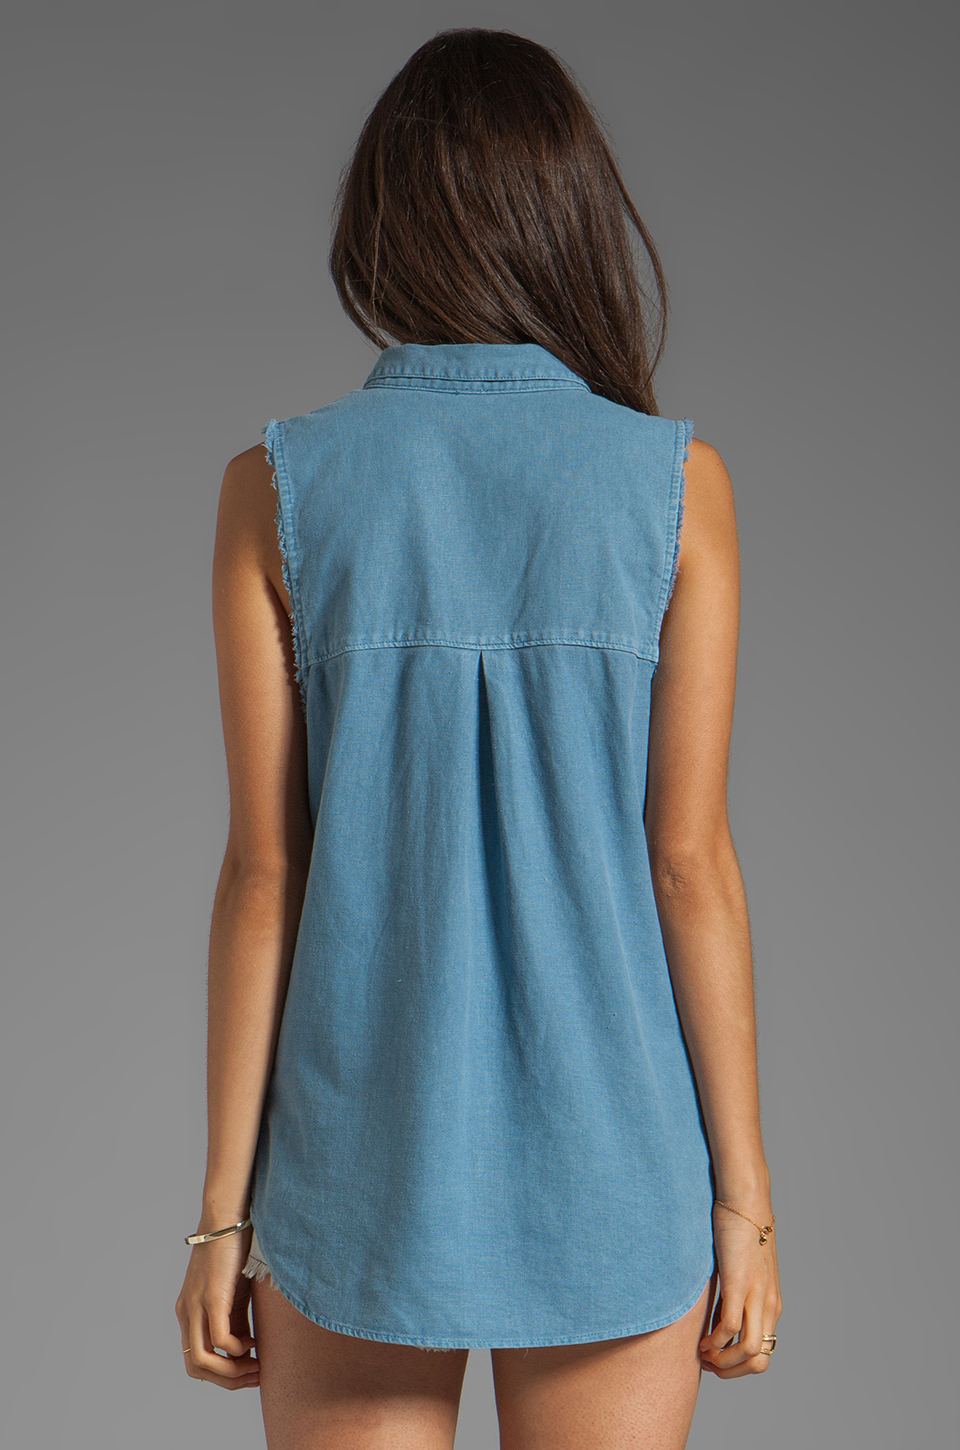 Free People Linen Sleeveless Shirt in Chambray Blue